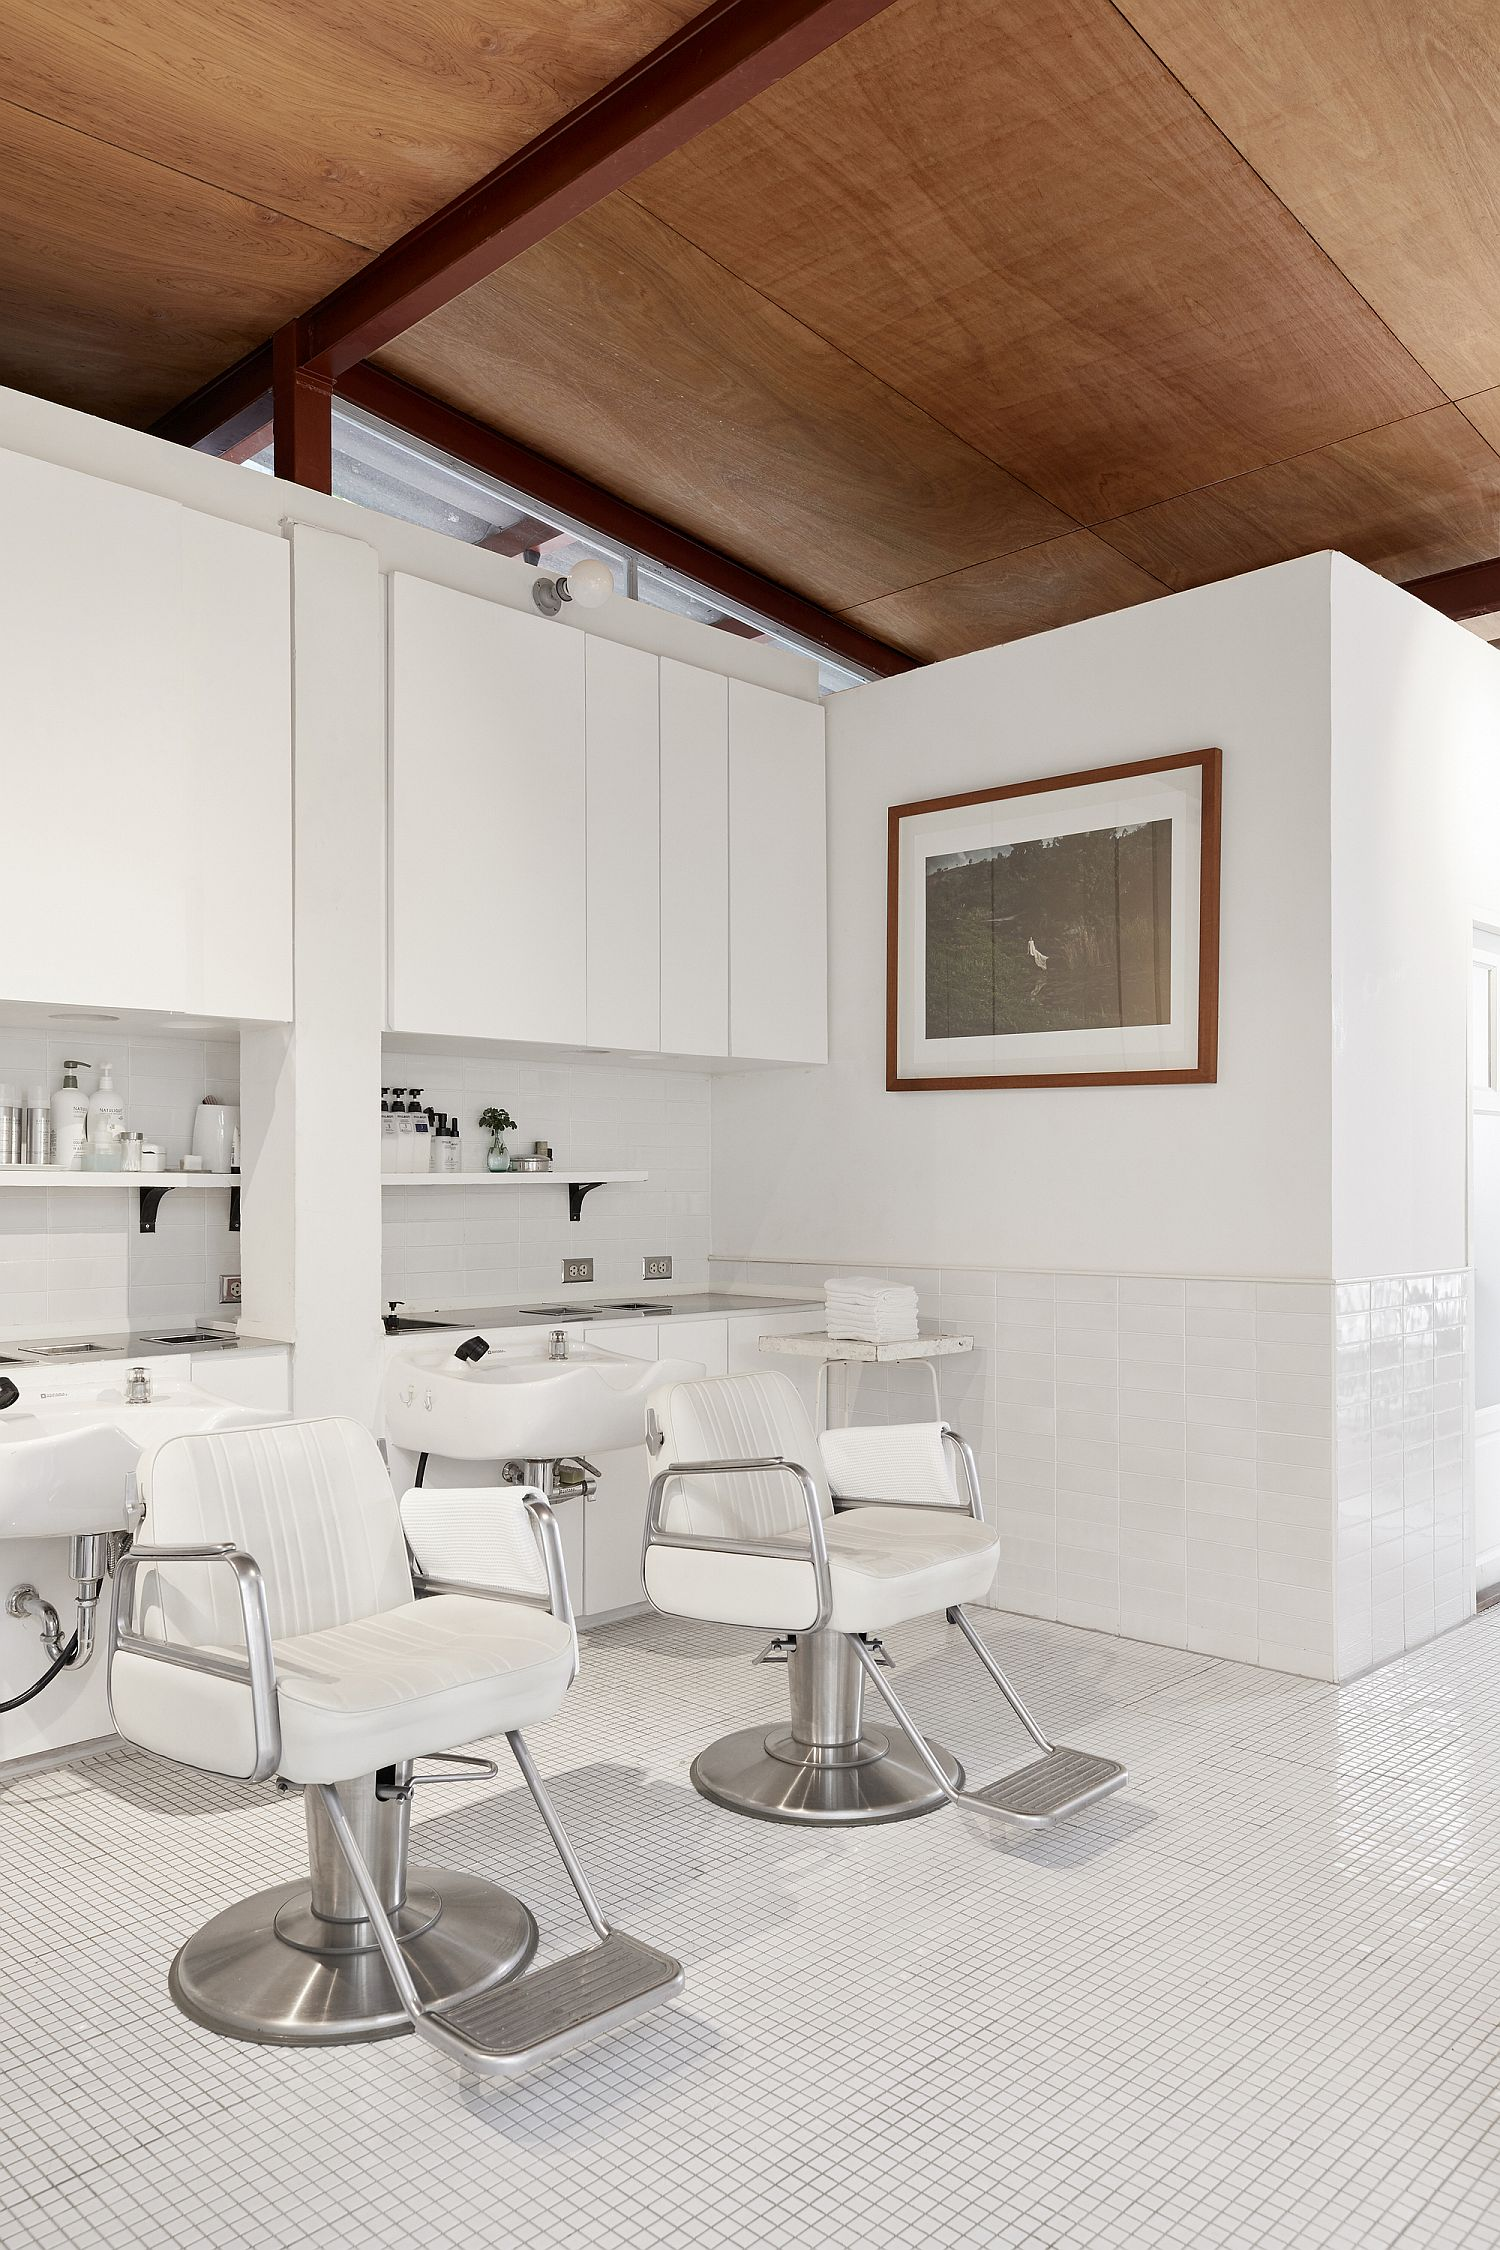 Wood ceiling for the all-white interior